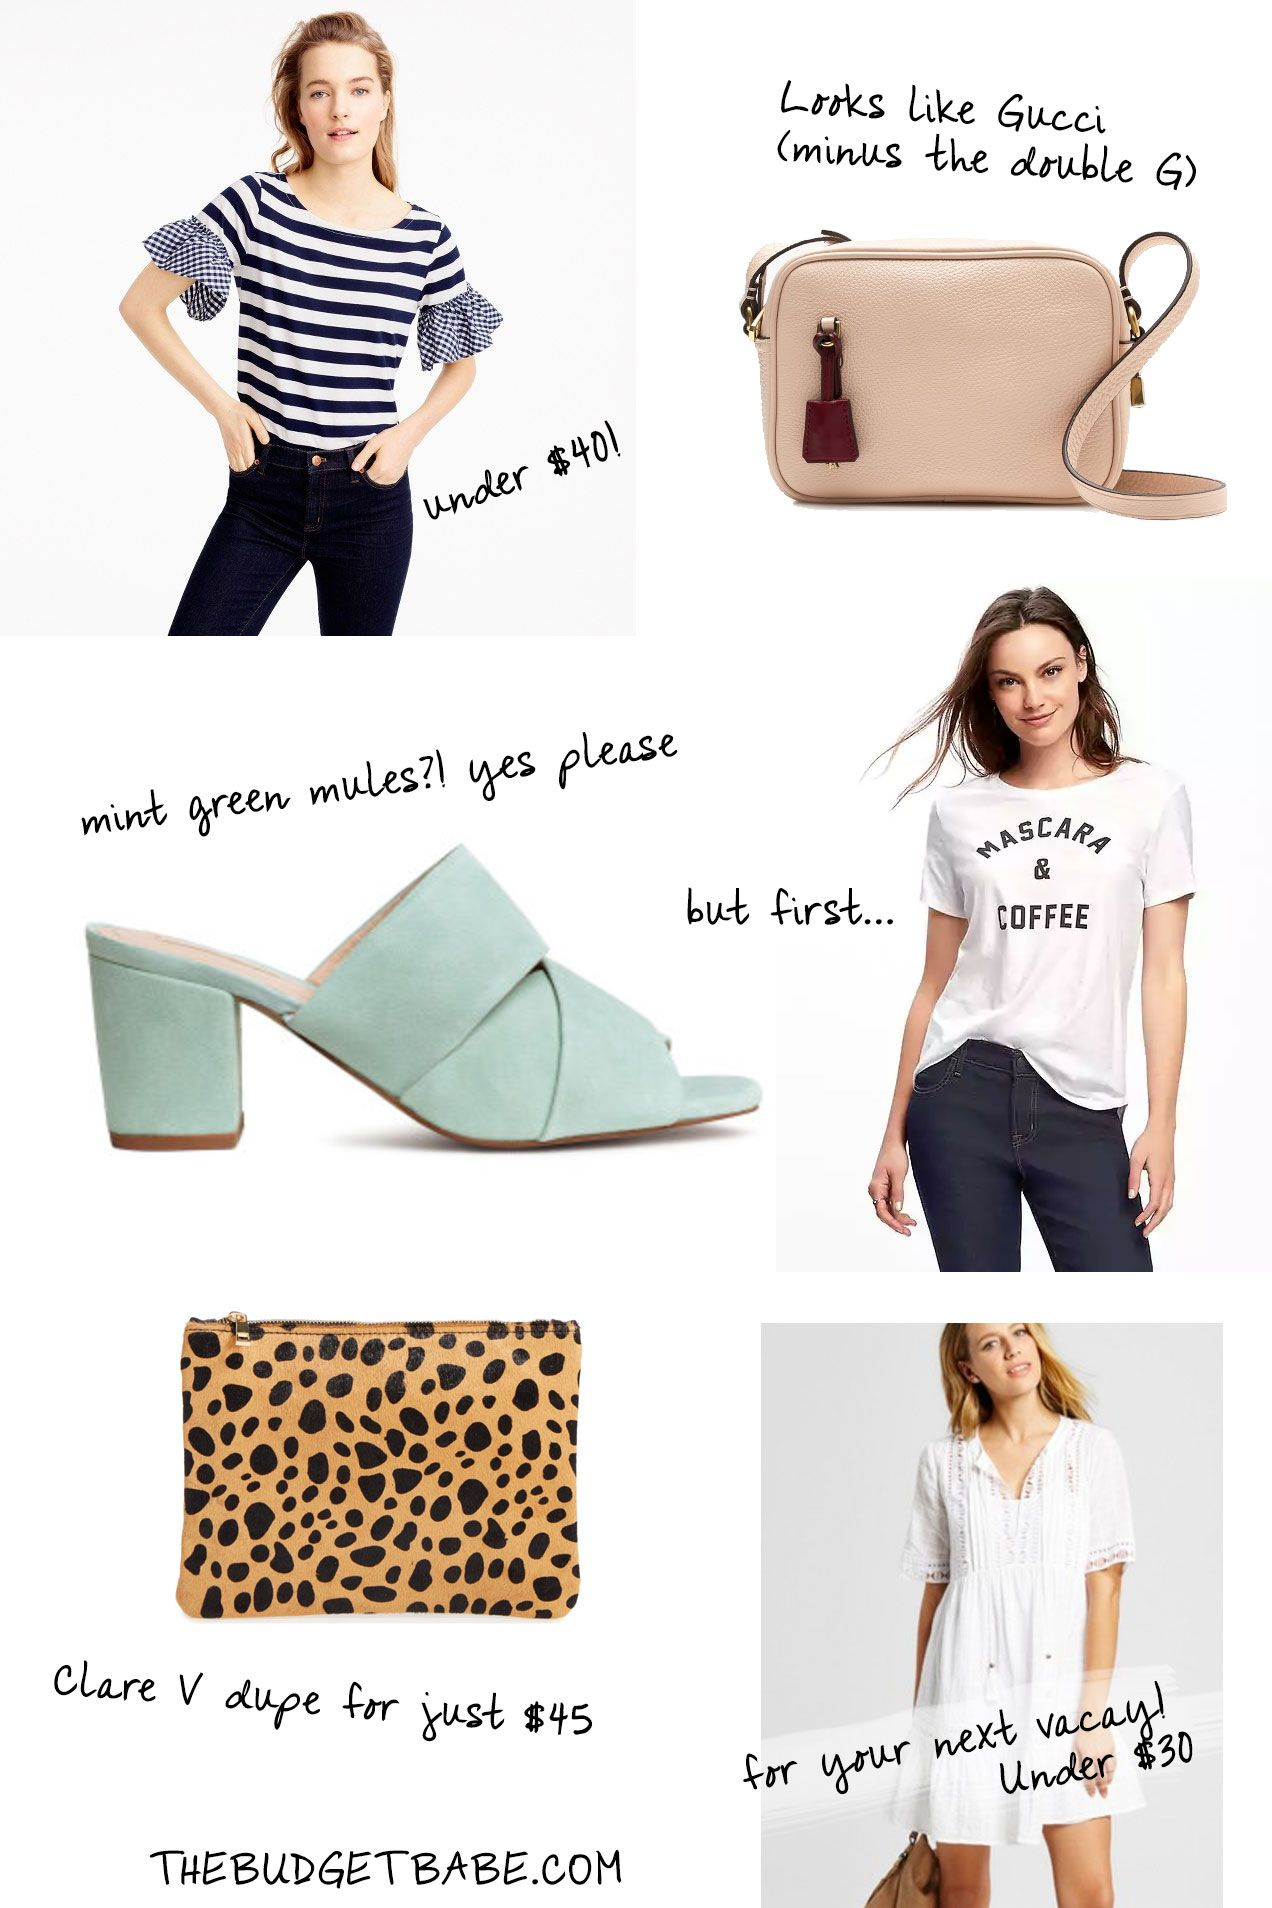 9c7cbc51352a6 The Budget Babe rounds up the best fashions on a budget (like